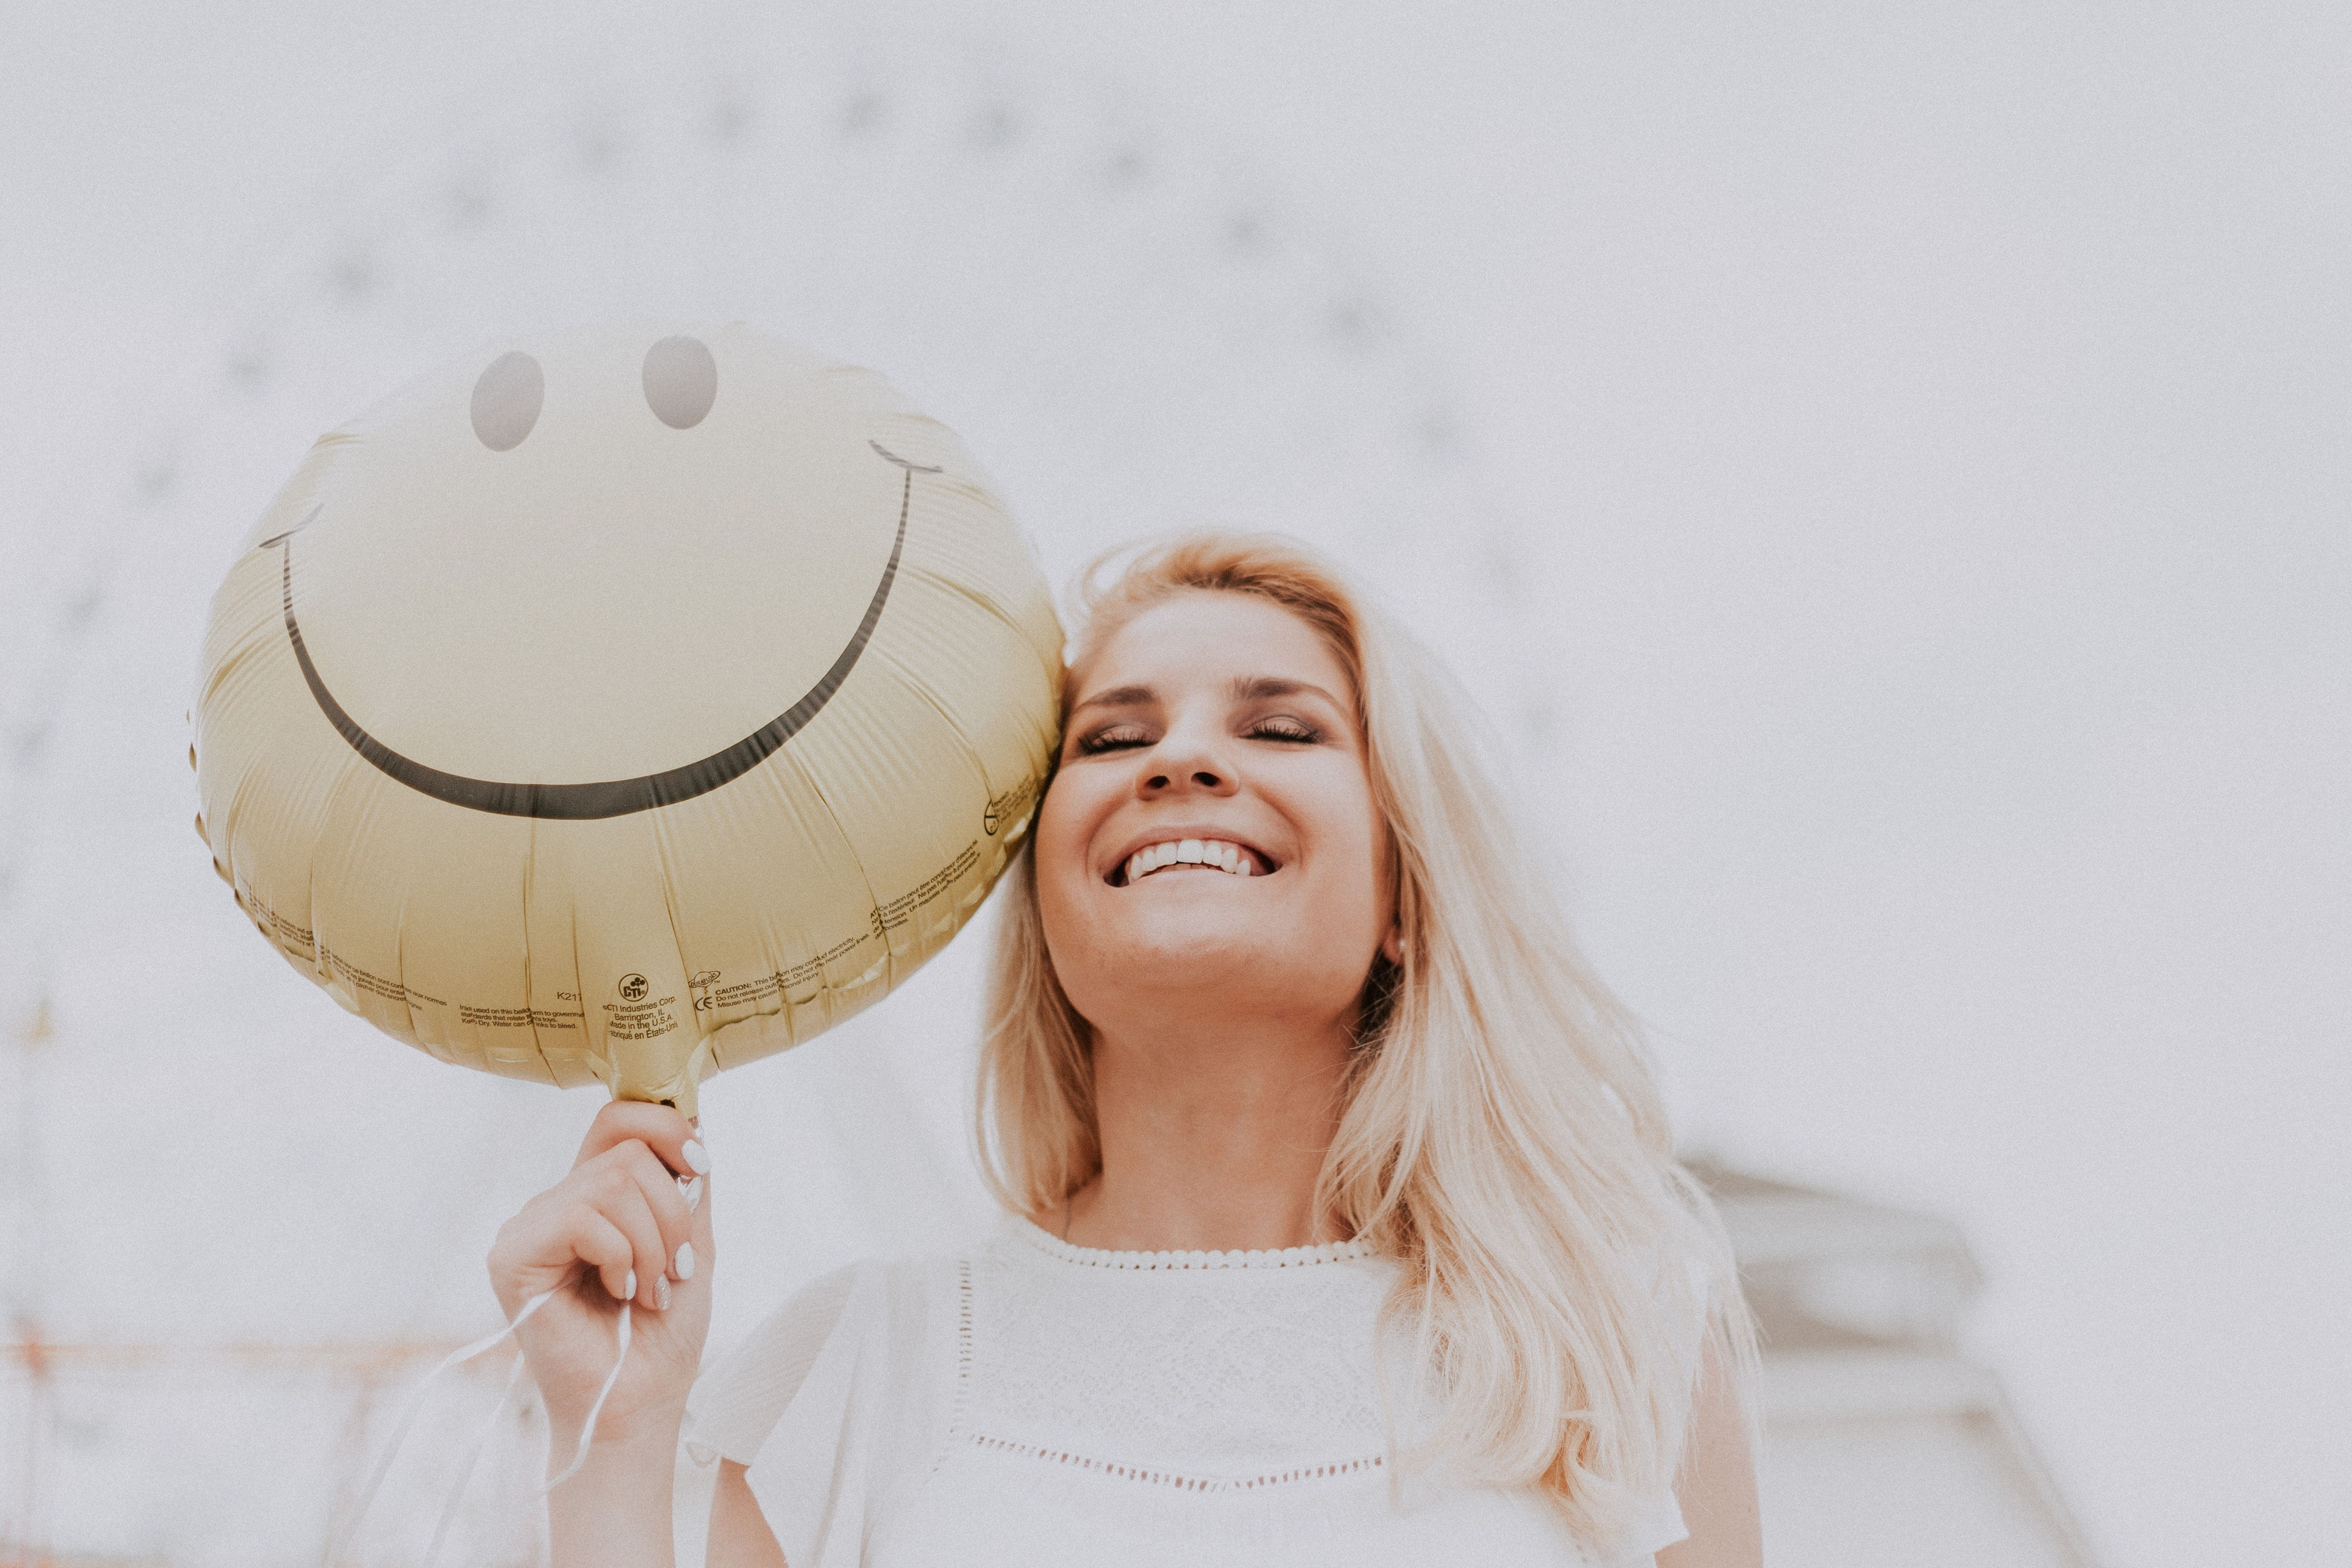 Woman smiling while holding a smiley face balloon